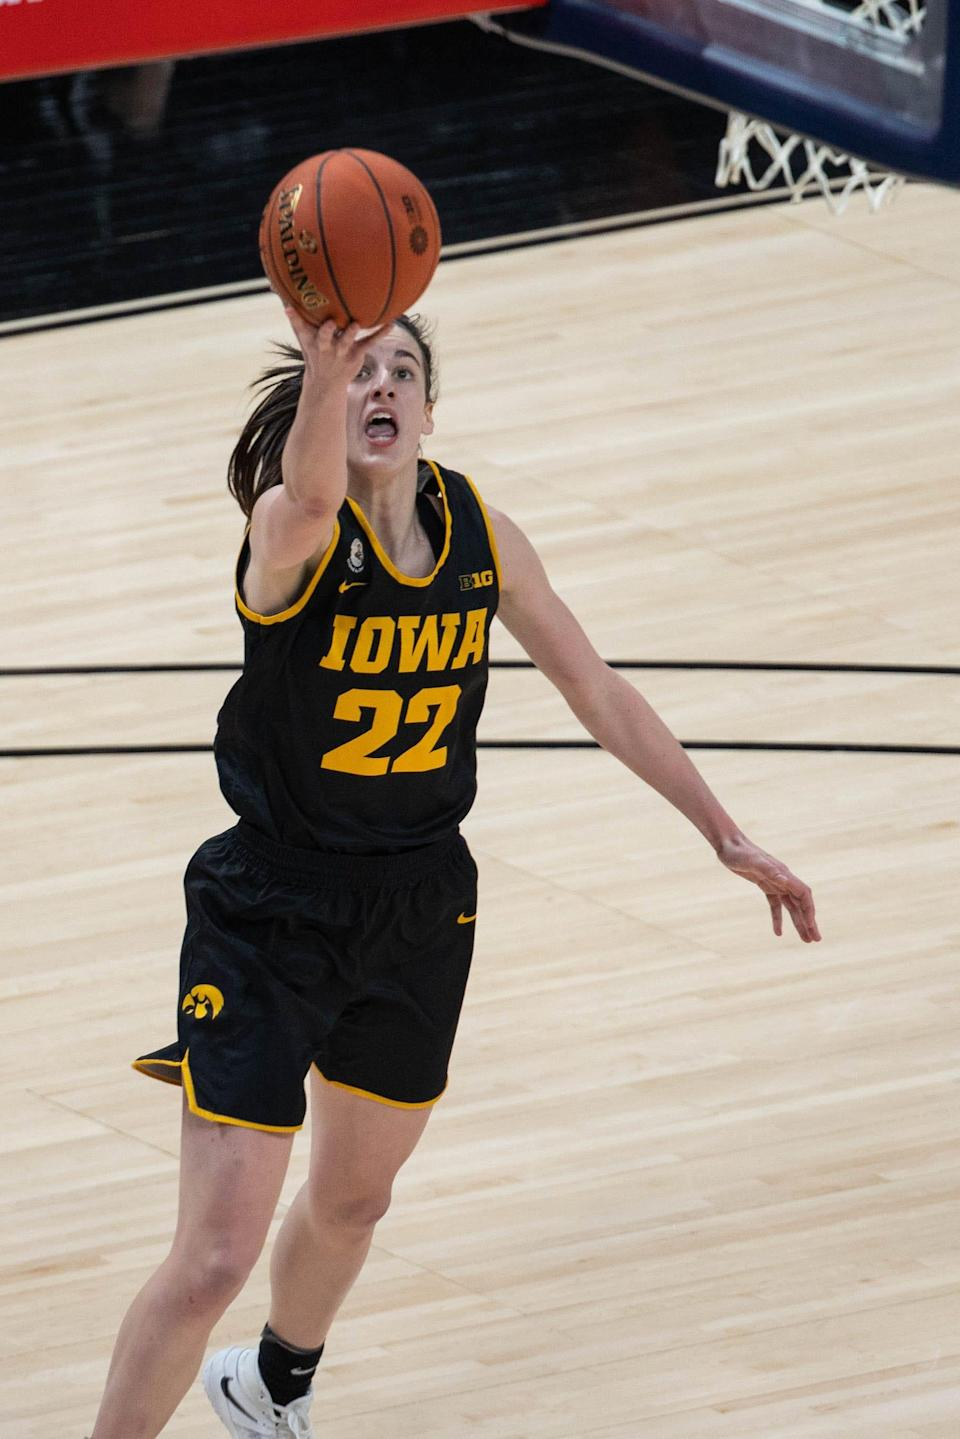 Iowa guard Caitlin Clark averages 26.7 points, 5.9 rebounds and 7.1 assists through 27 games this season.